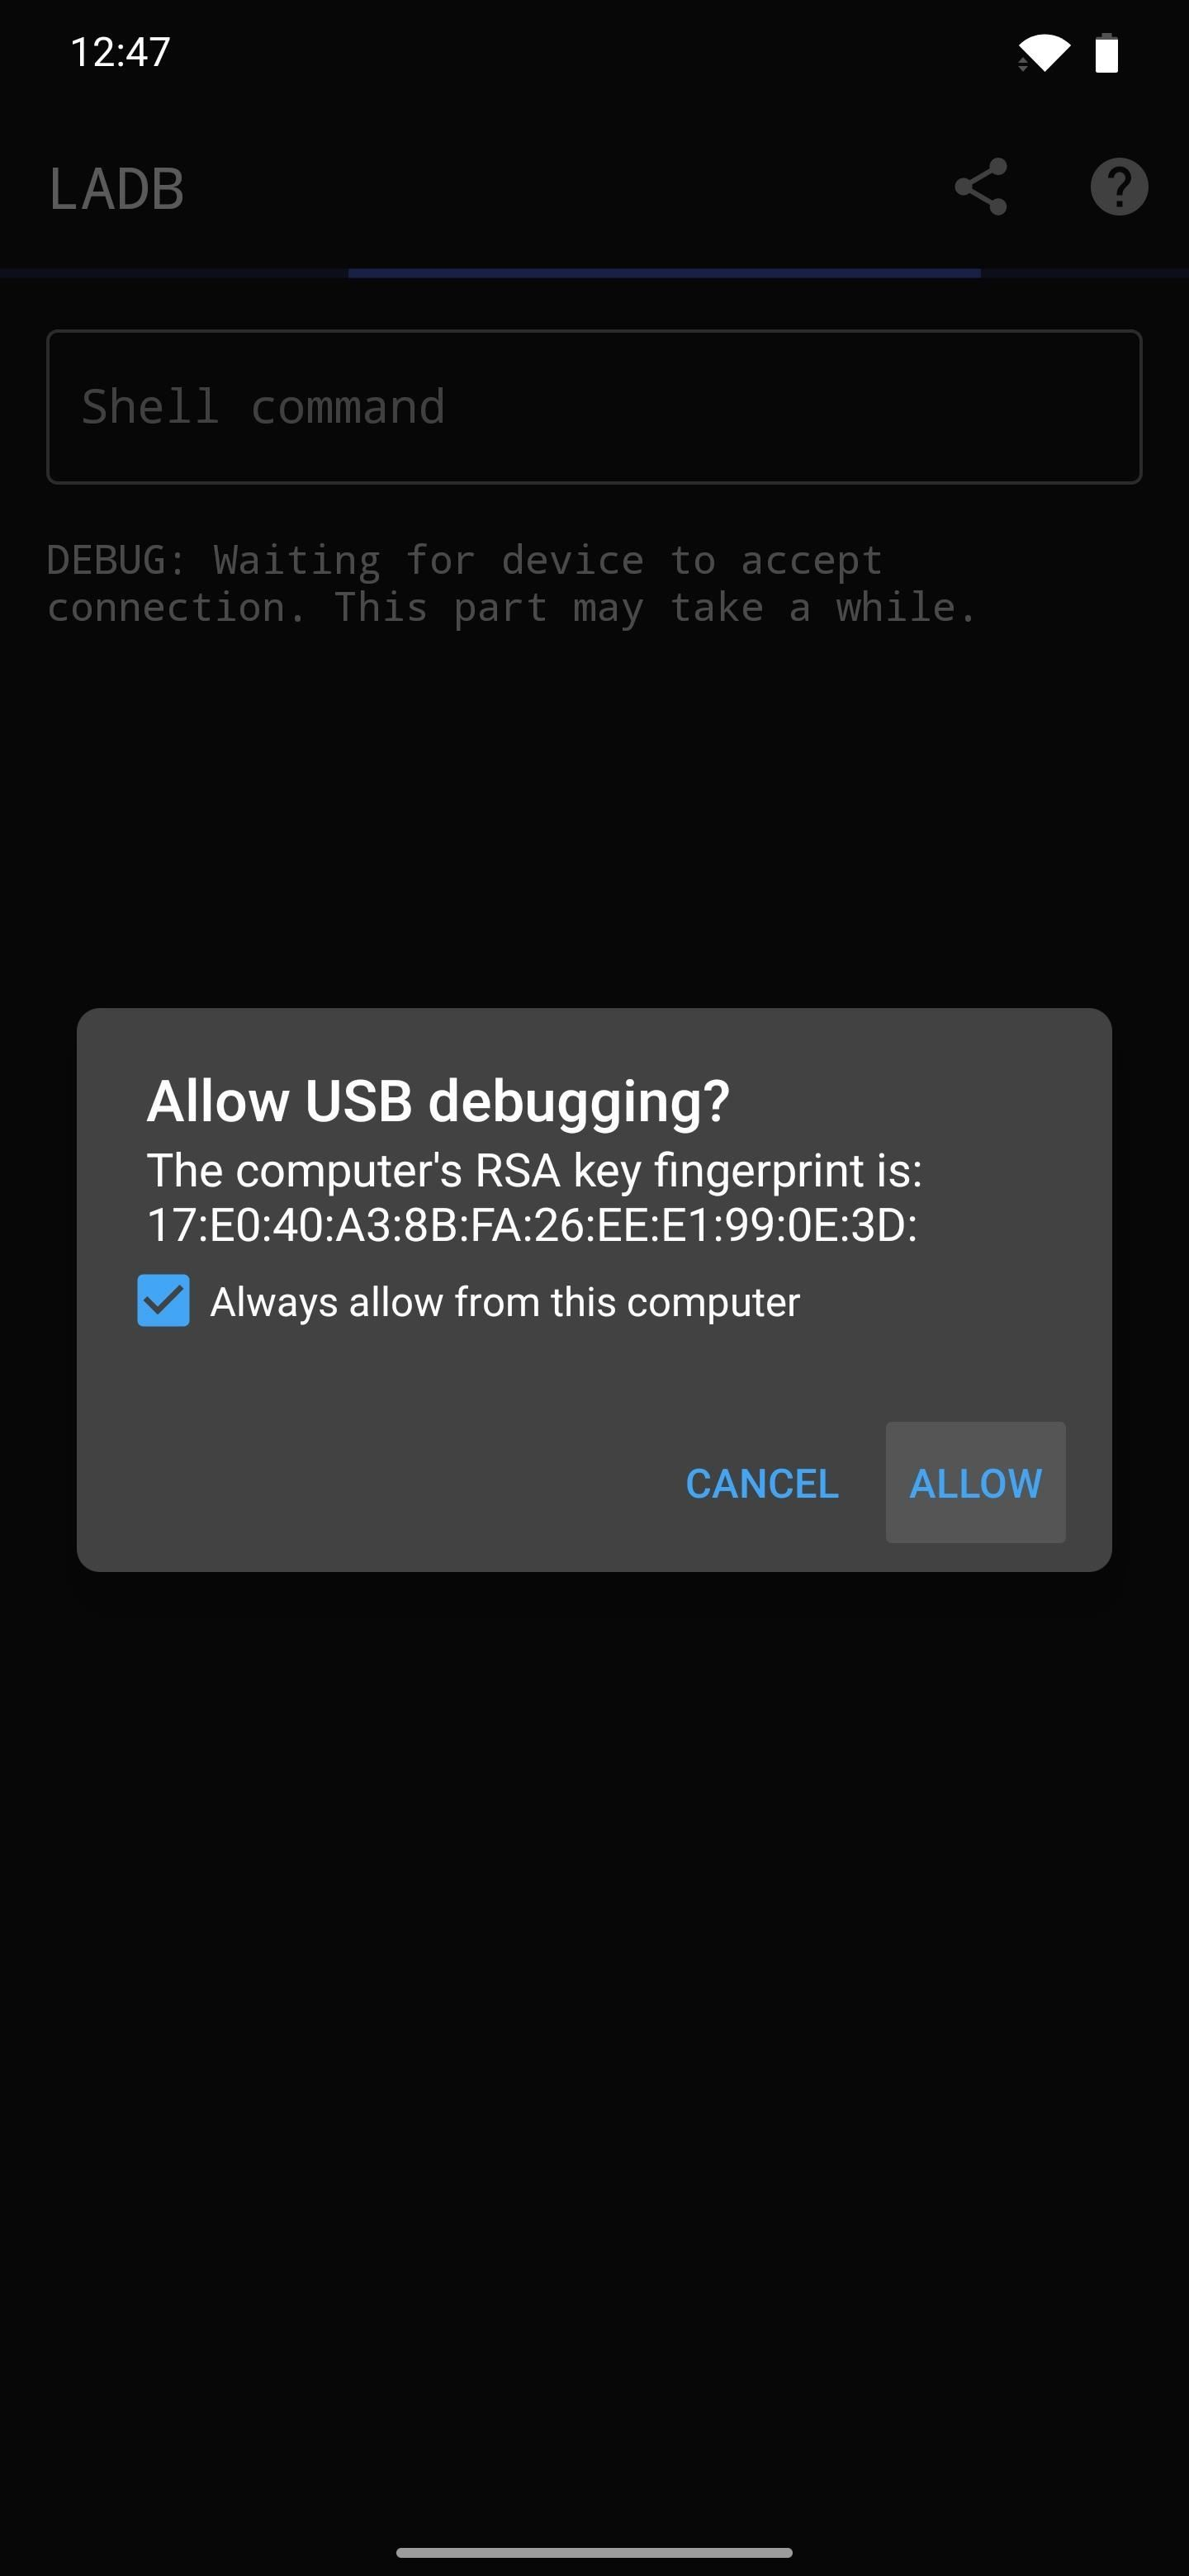 How to Send ADB Shell Commands to Your Own Phone - No Computer Needed, No Root Needed